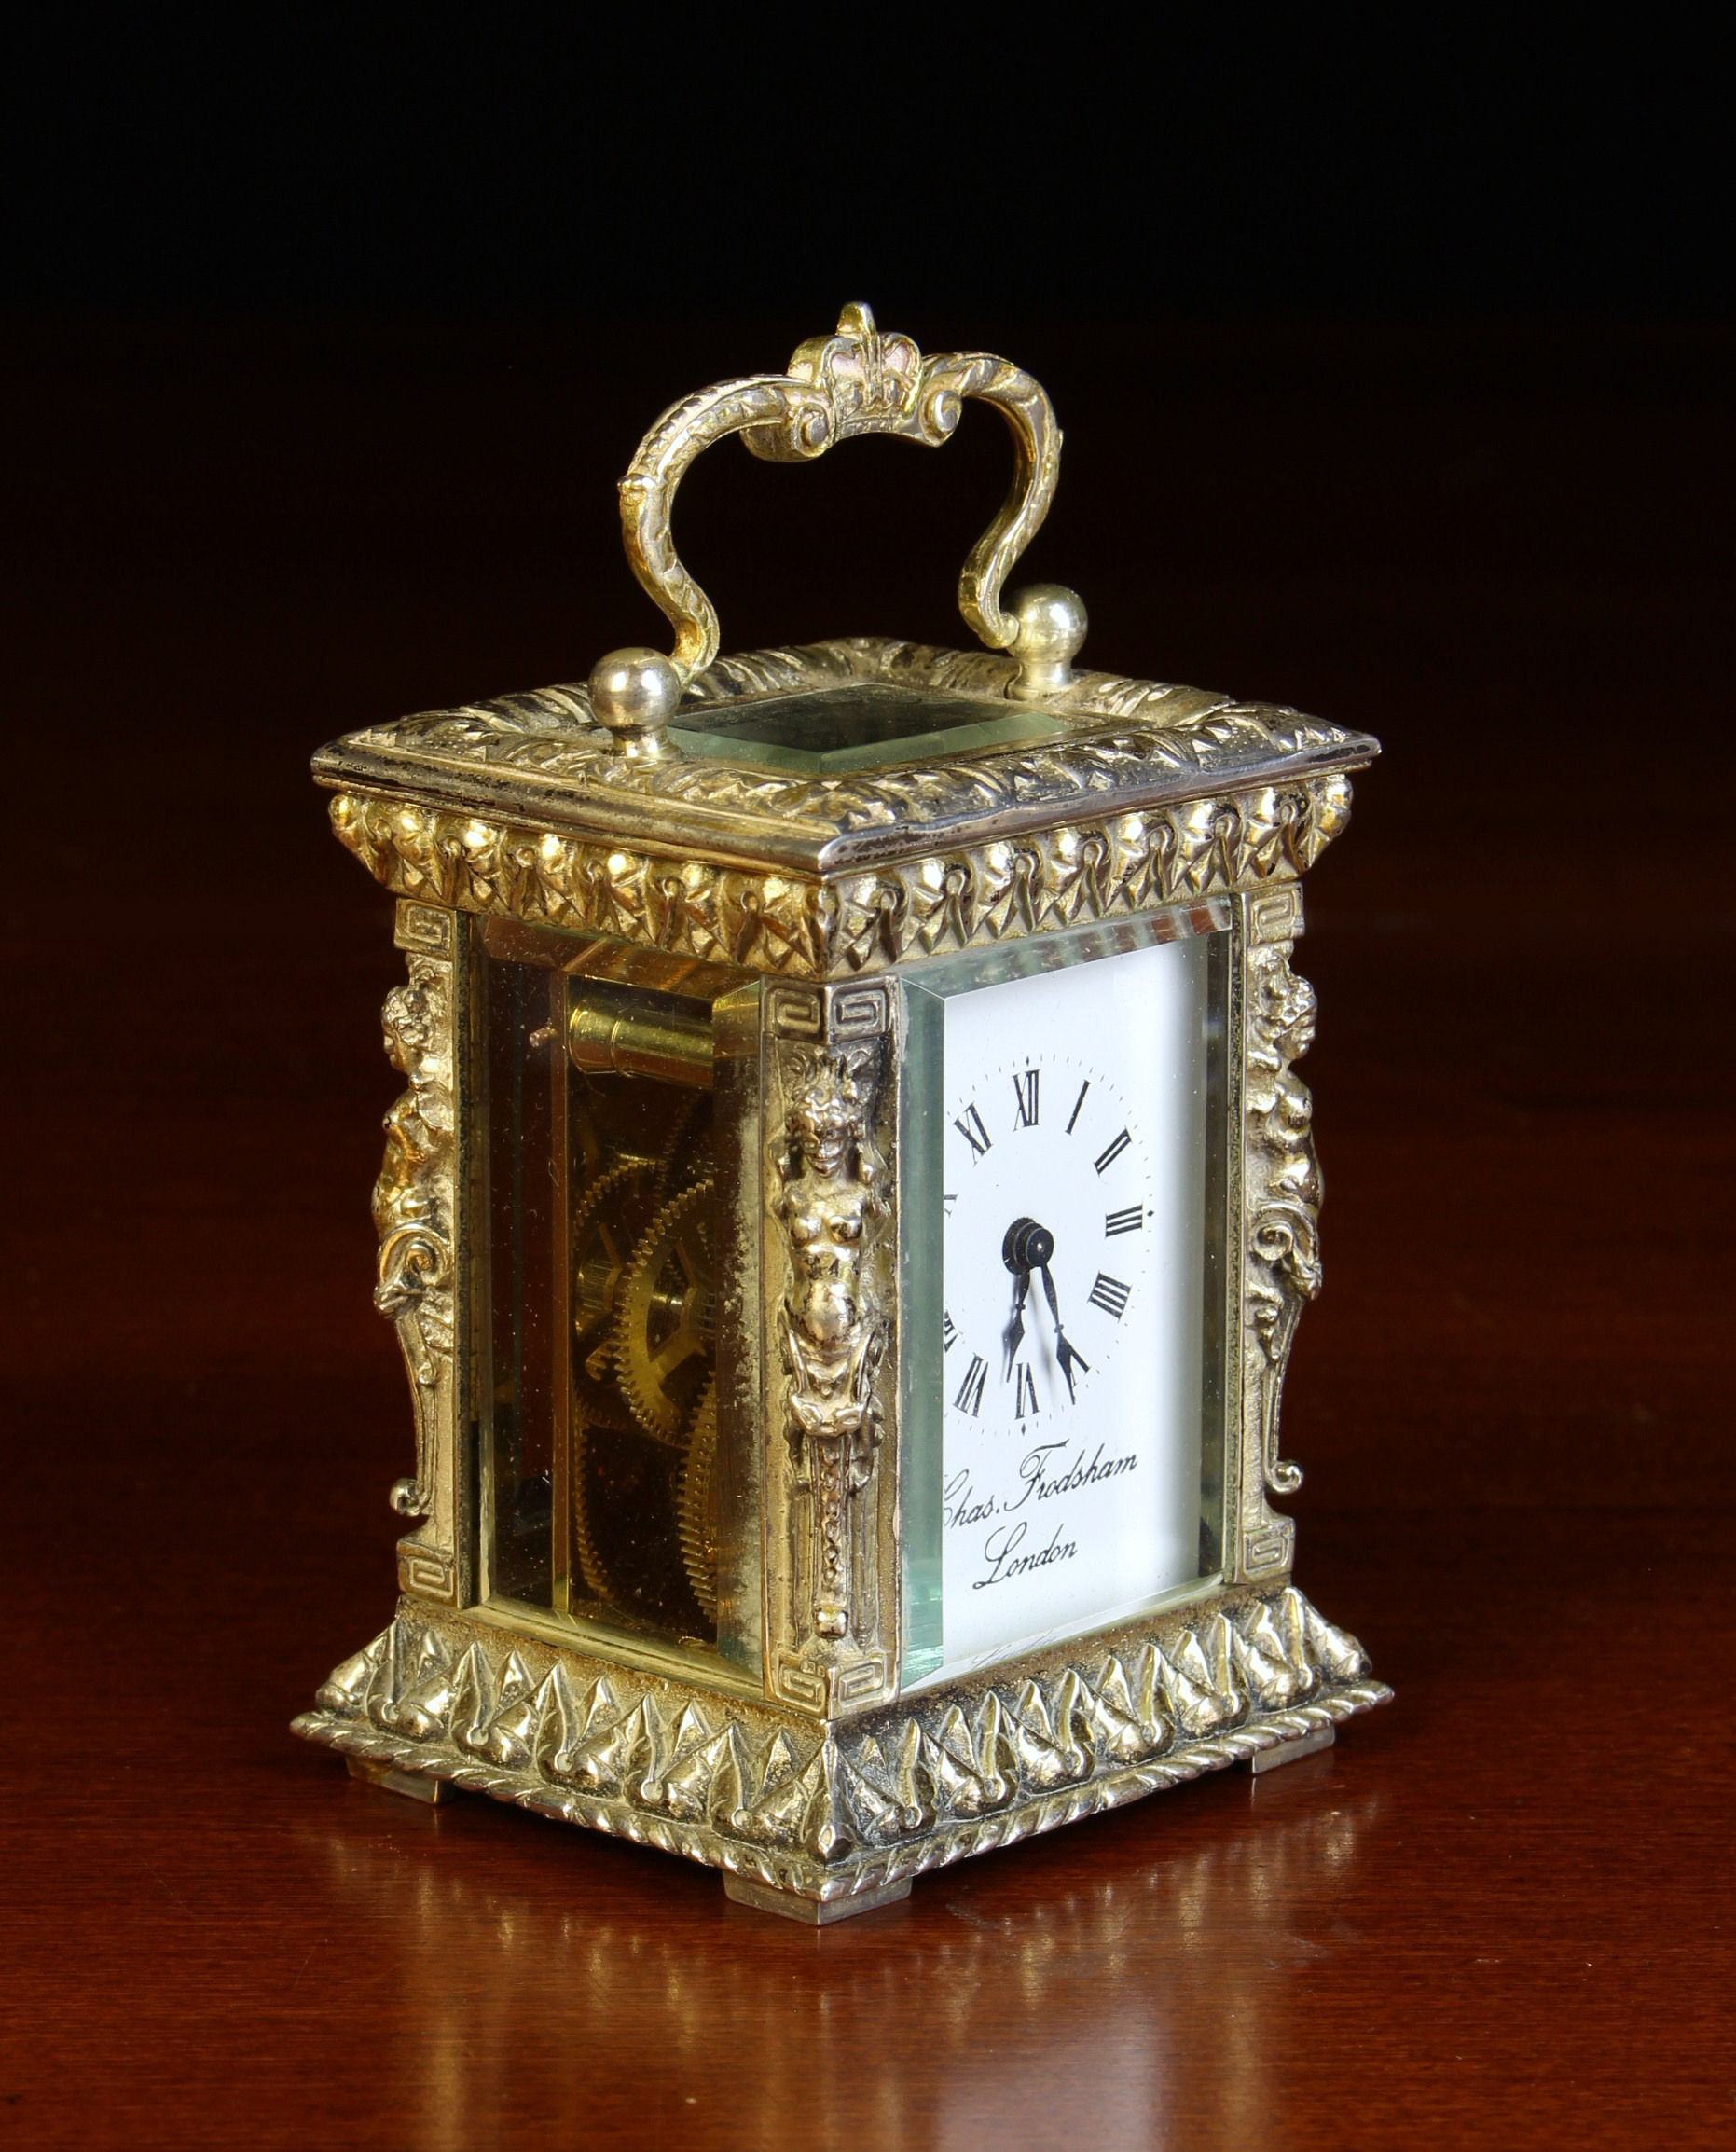 A Miniature Silver Cased Carriage Clock by Chas. Frodsham, London. - Image 2 of 3